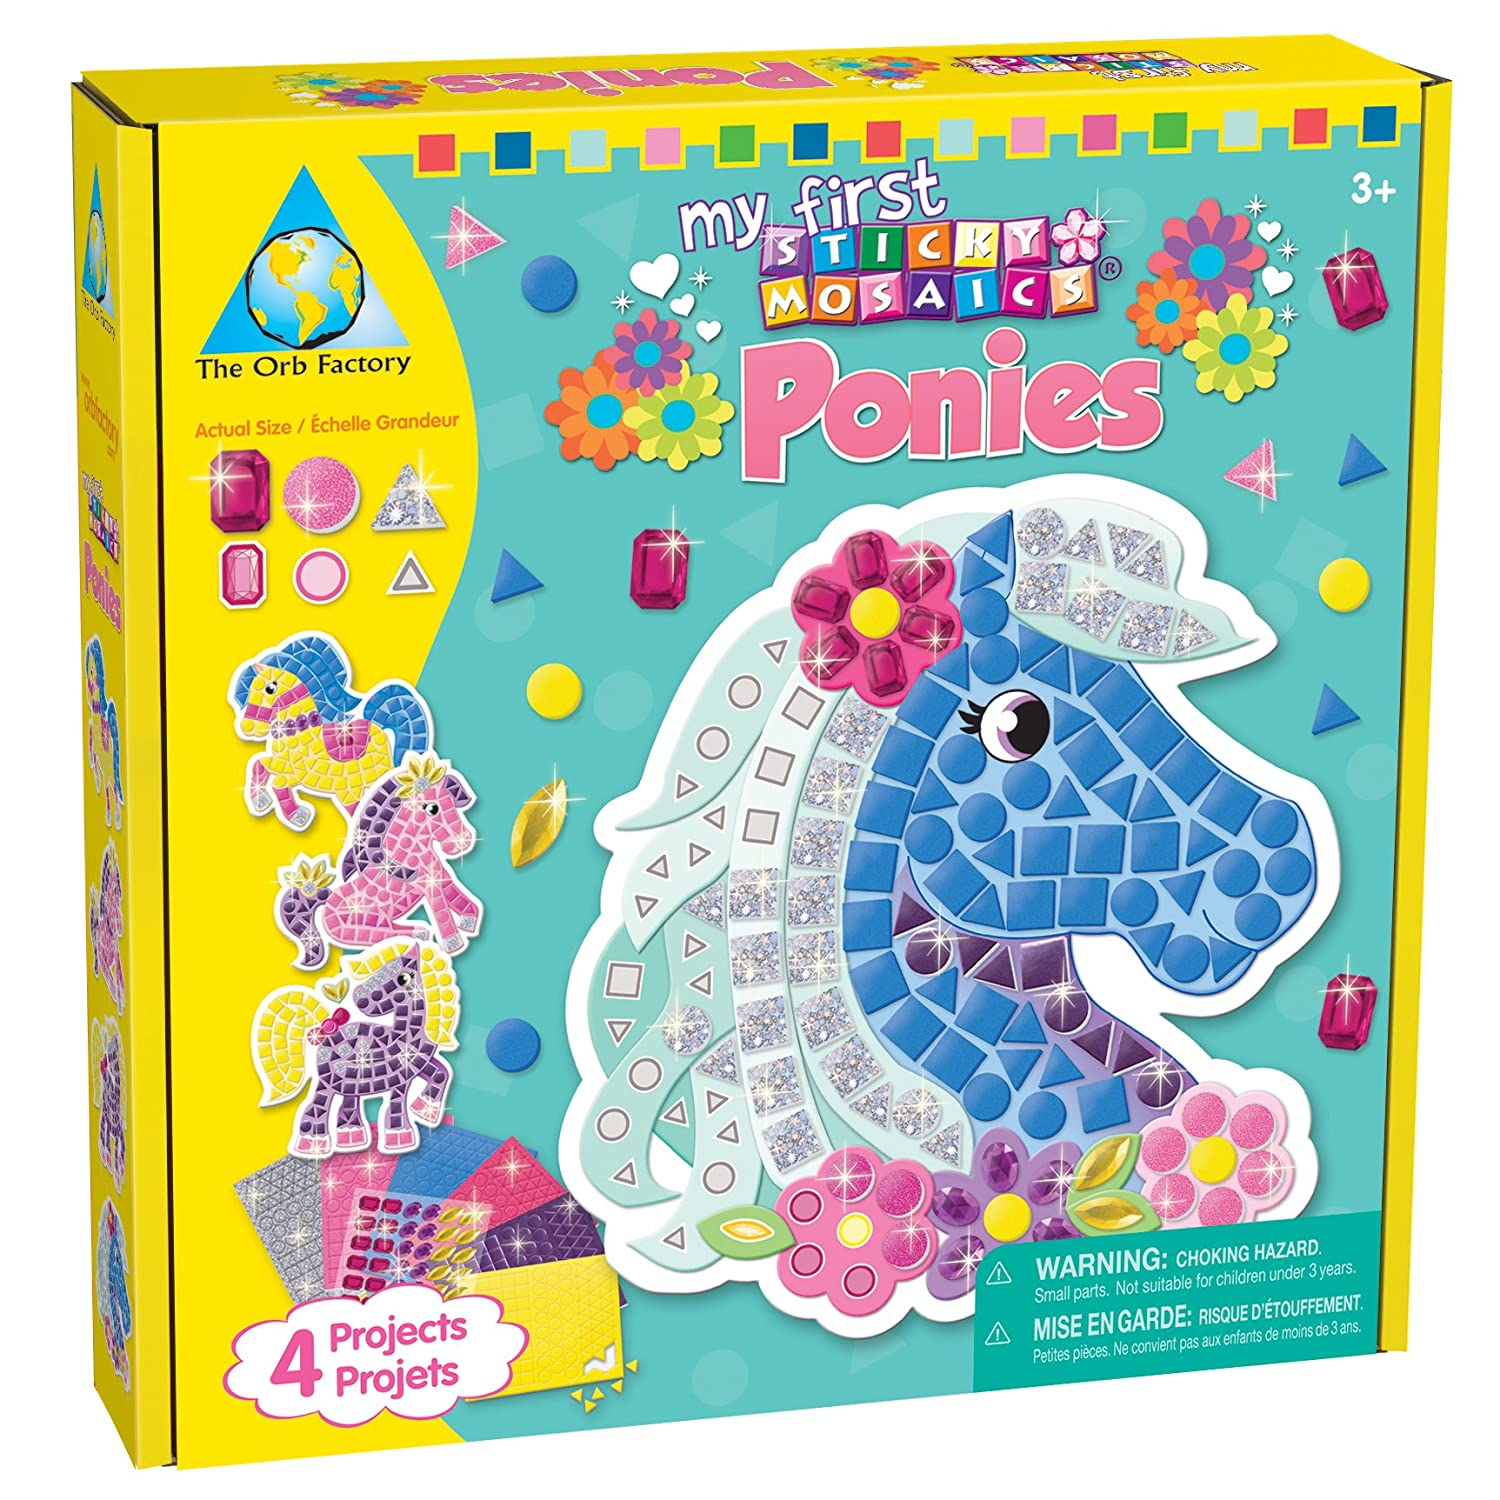 Craft kits for 3 year olds - Sticky Mosaics Ponies